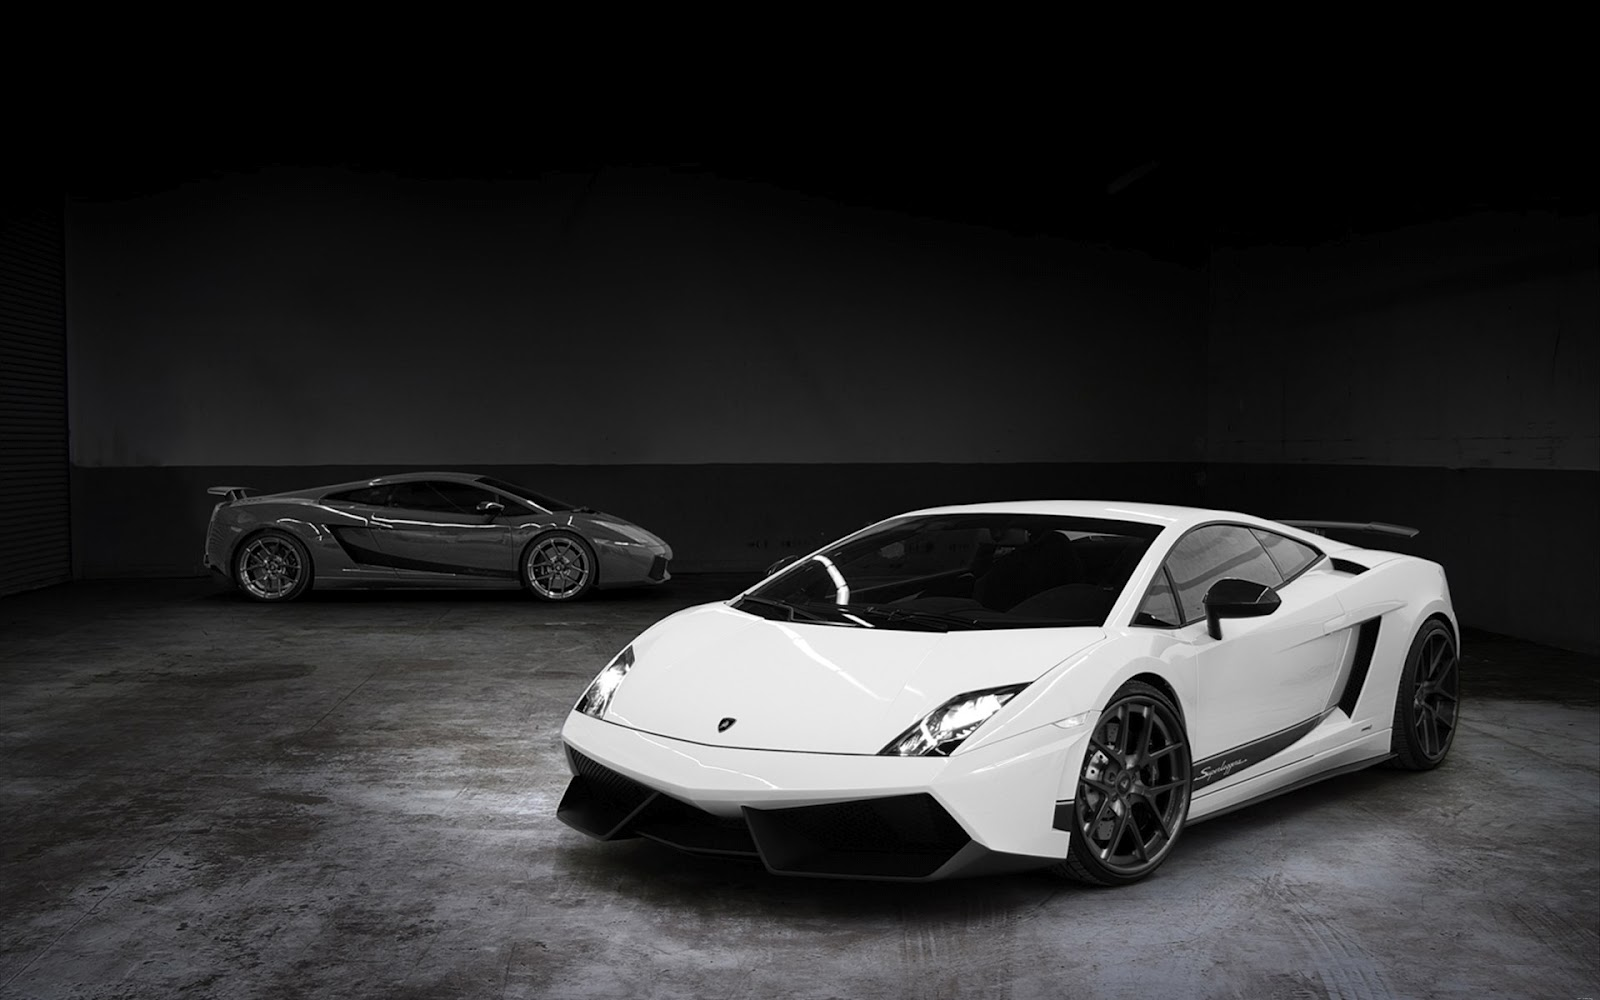 Lamborghini Sport Car In Garage Black And White Hd 1600x1000 Download Hd Wallpaper Wallpapertip